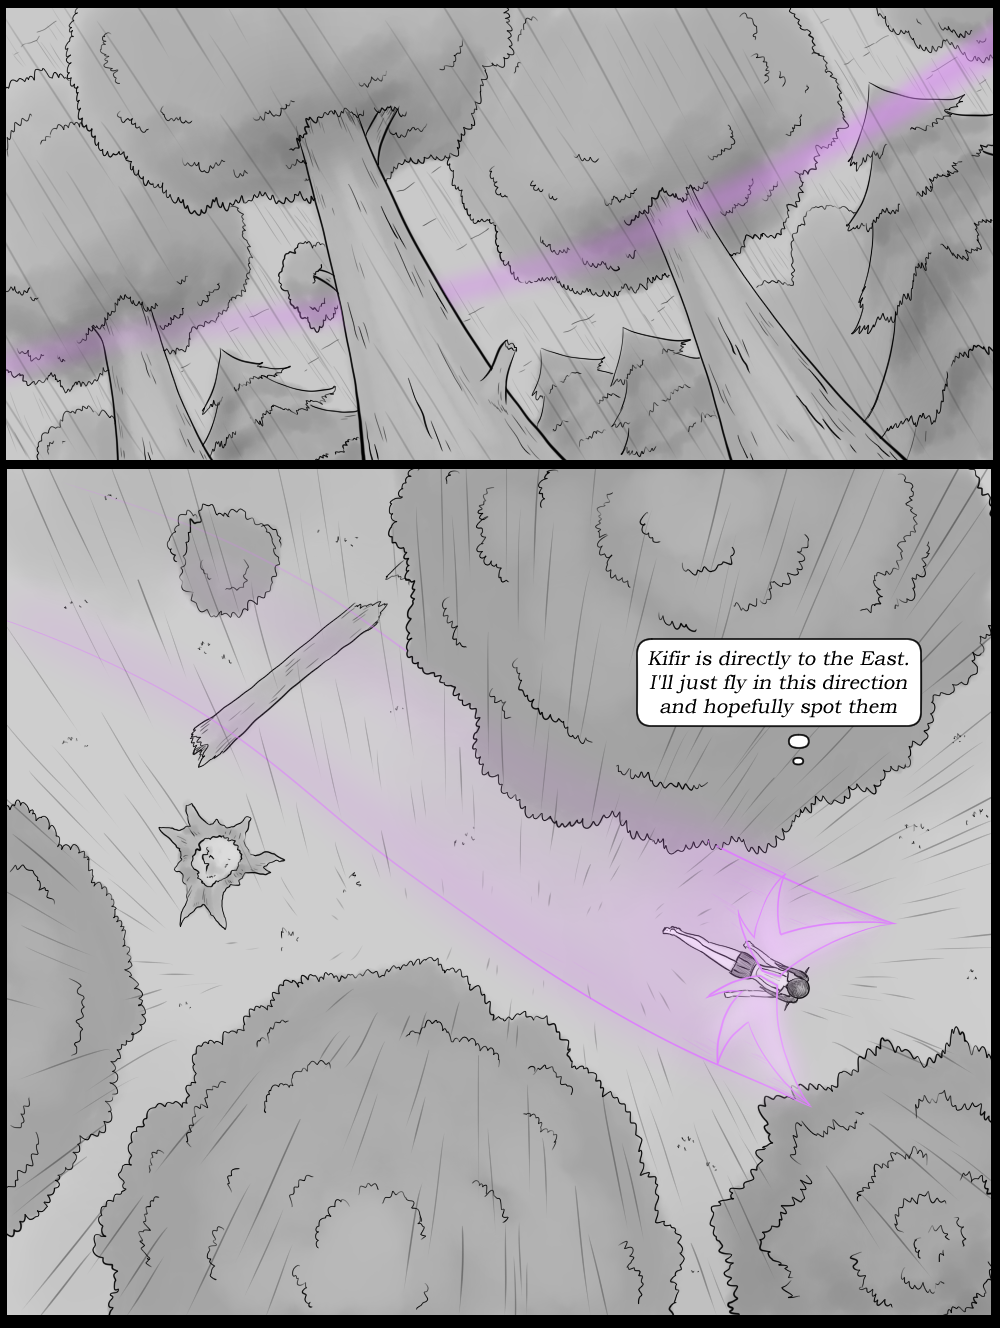 Page 33 - Finding the way (Part 2)